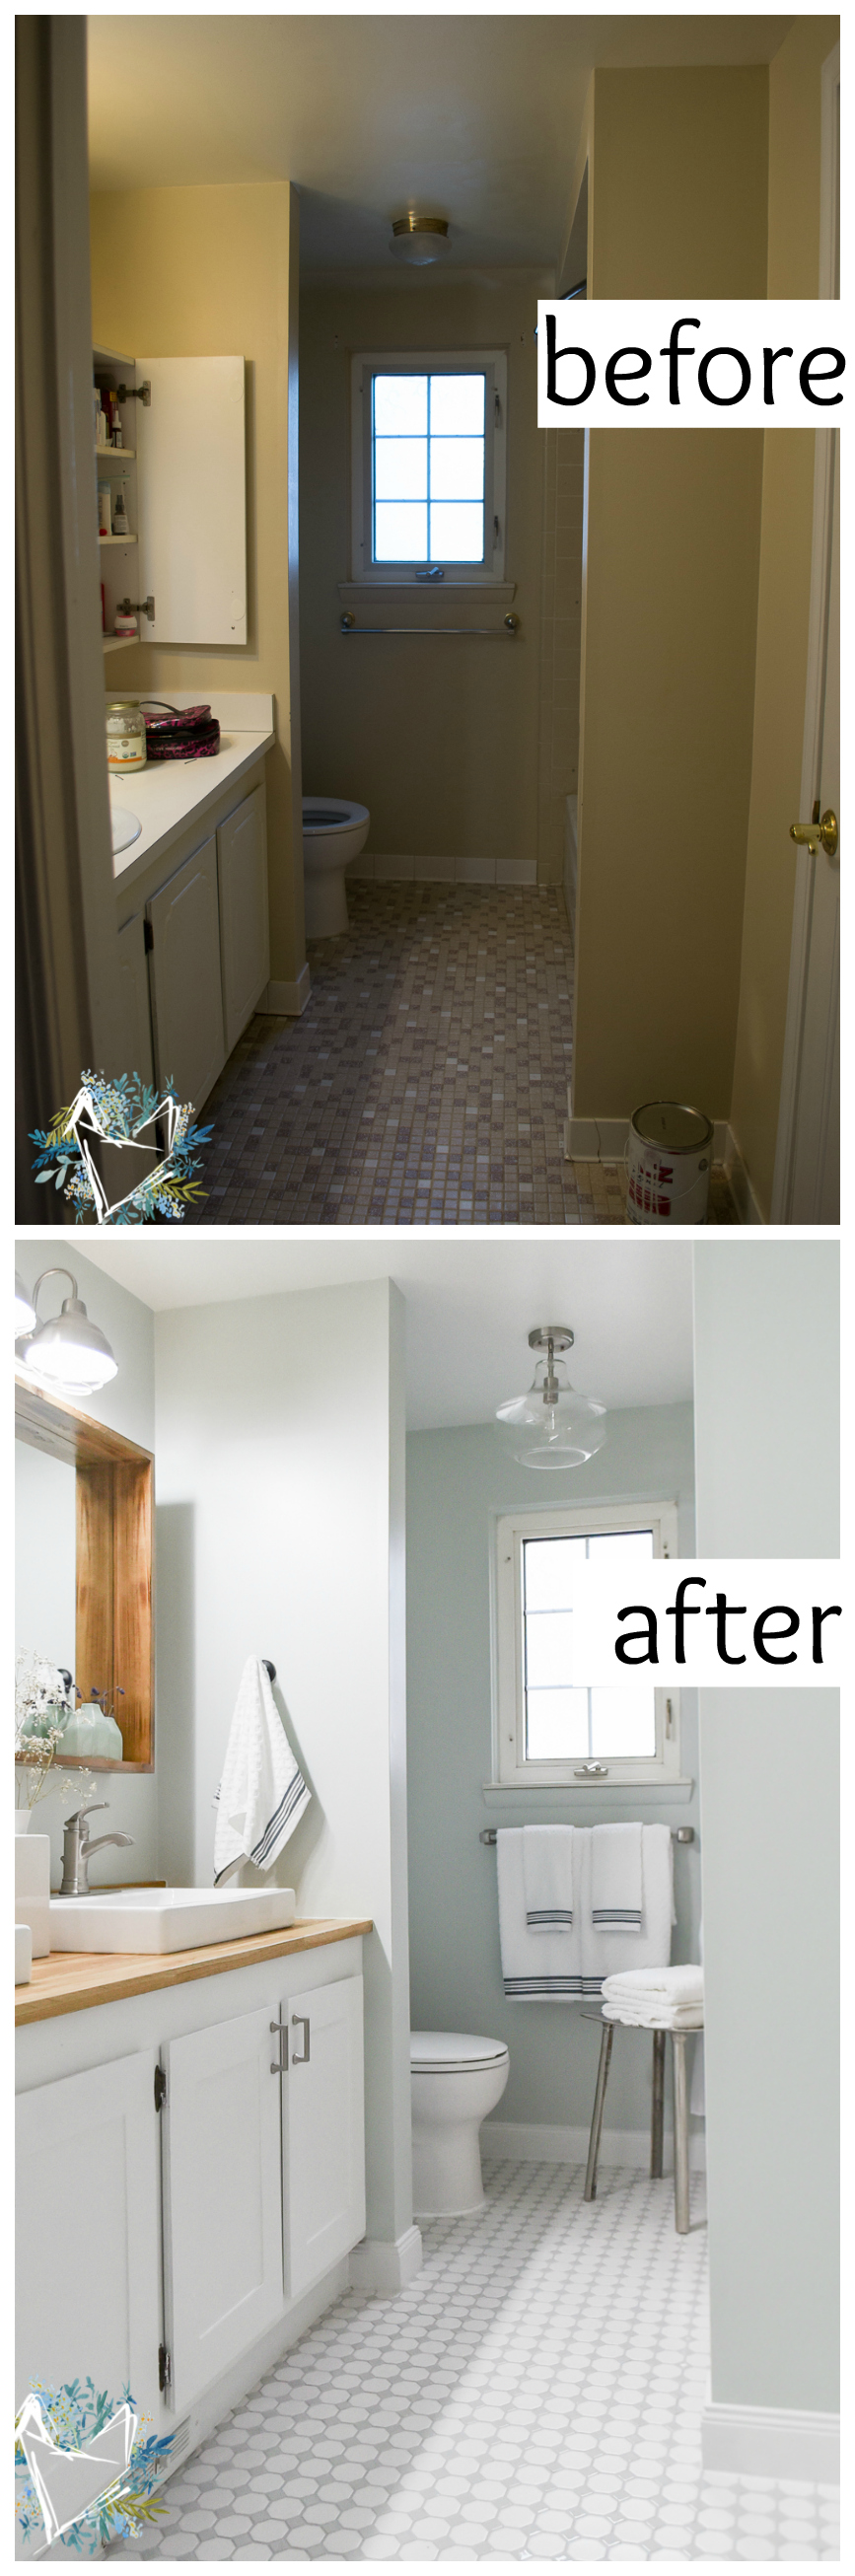 before and after modern farmhouse bathroom renovation! You have to see how this bathroom makeover was done on a budget!